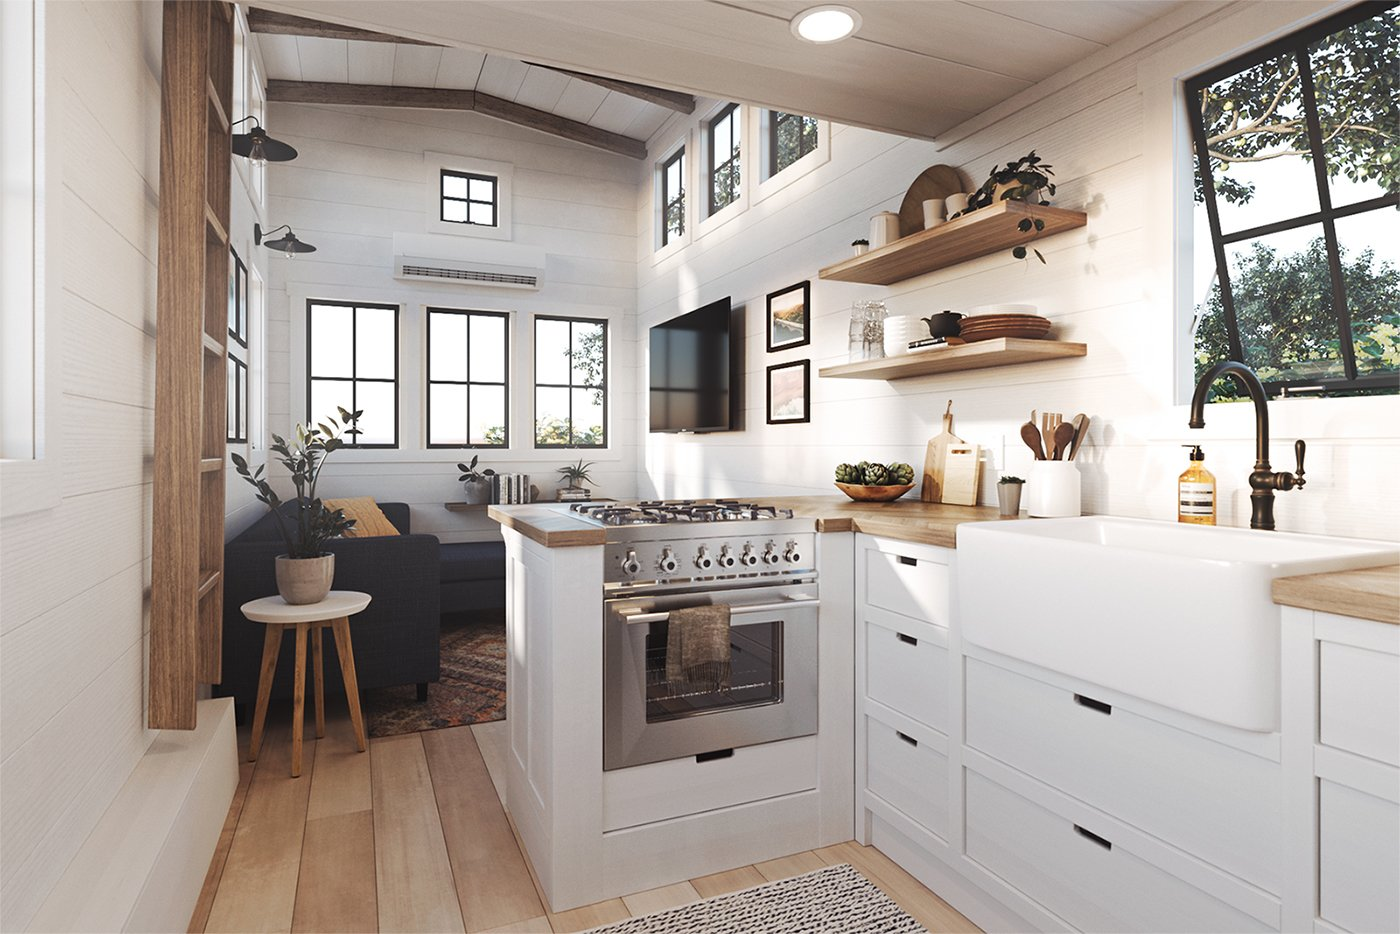 12 Tiny House Companies That Can Make Your MicroLiving Dreams Come